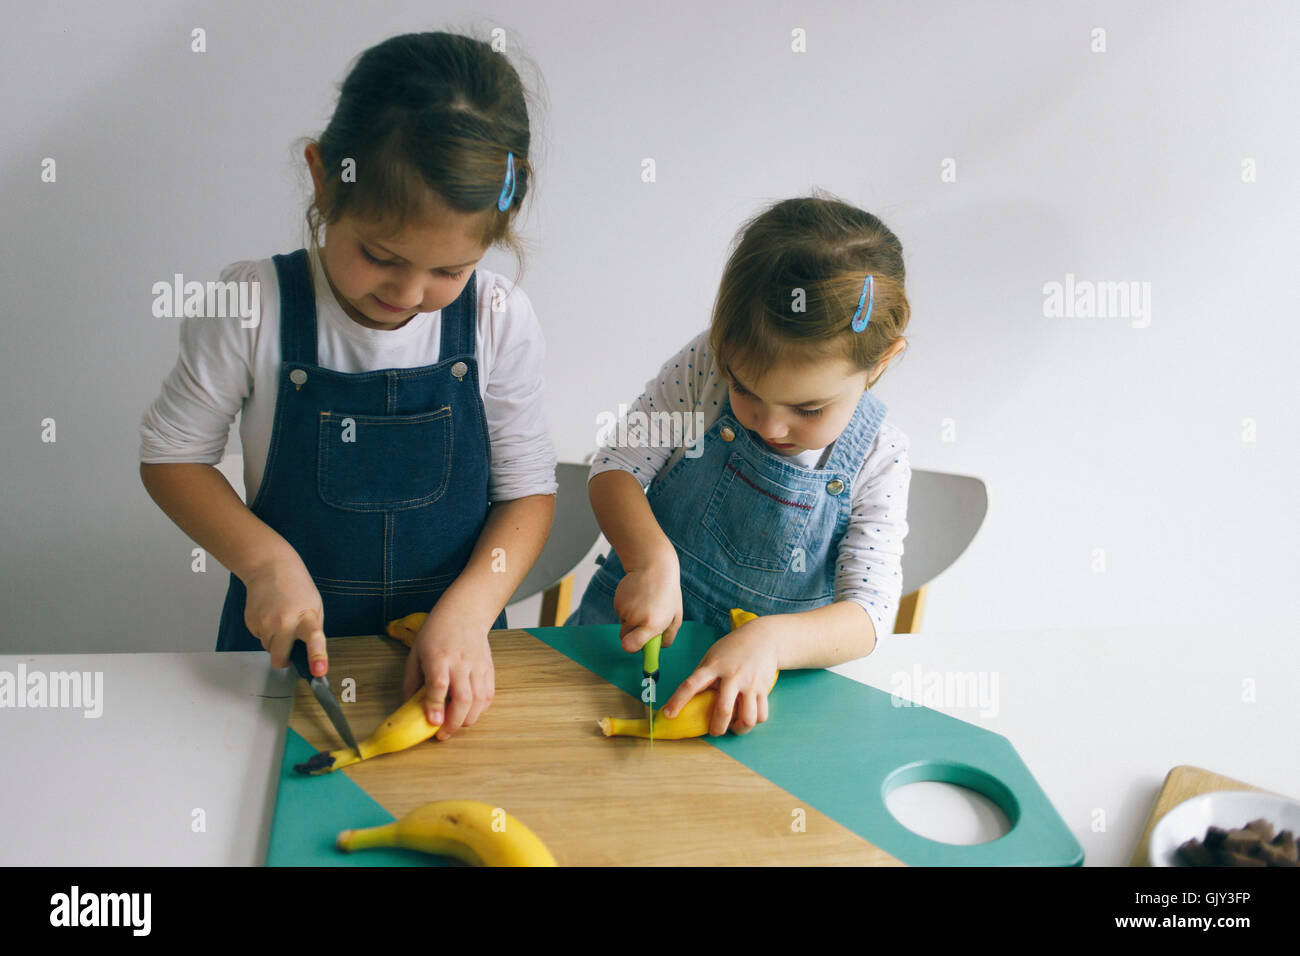 Two little girls chopping banana on the wooden board - Stock Image